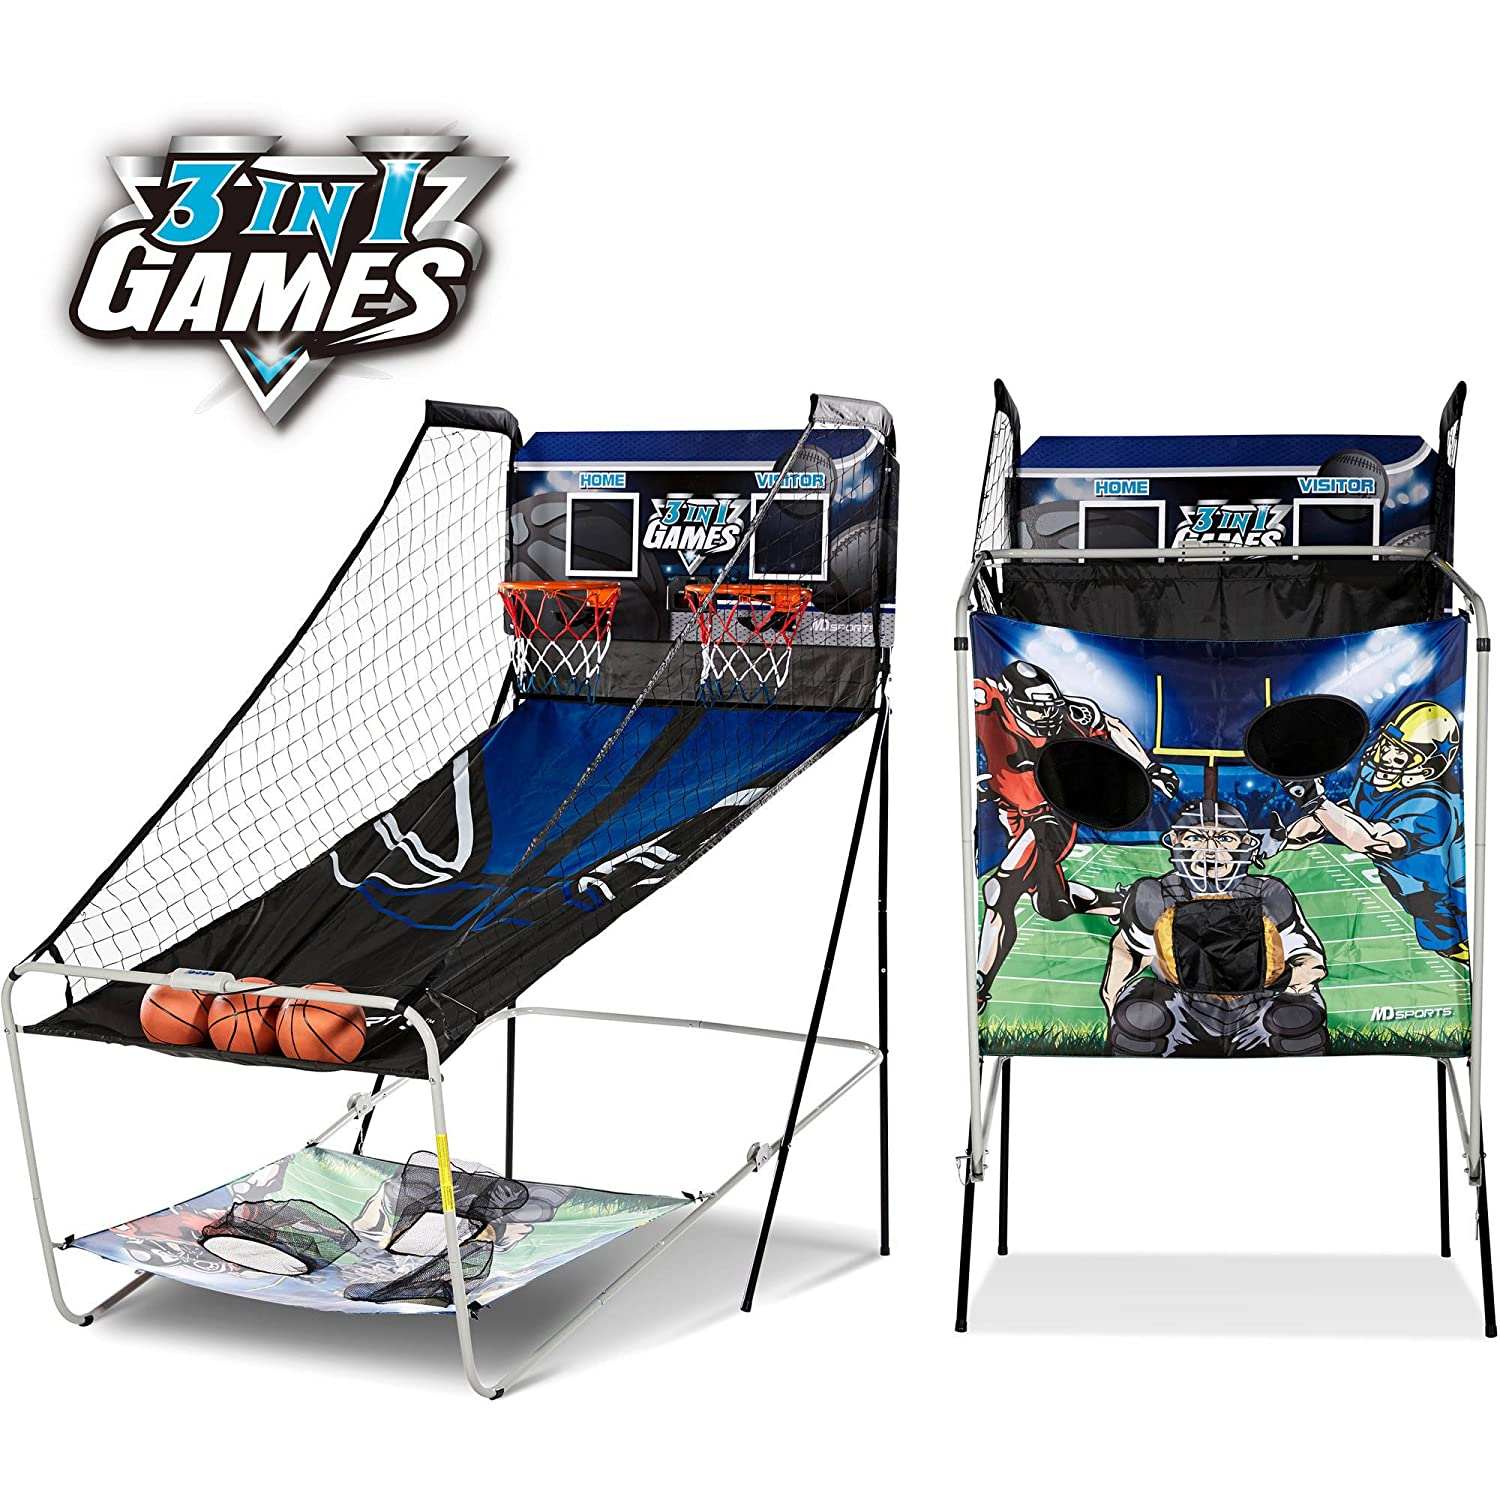 MD Sports 3-In-1 Basketball Game, Included Baseball & Football Games Medal Sports